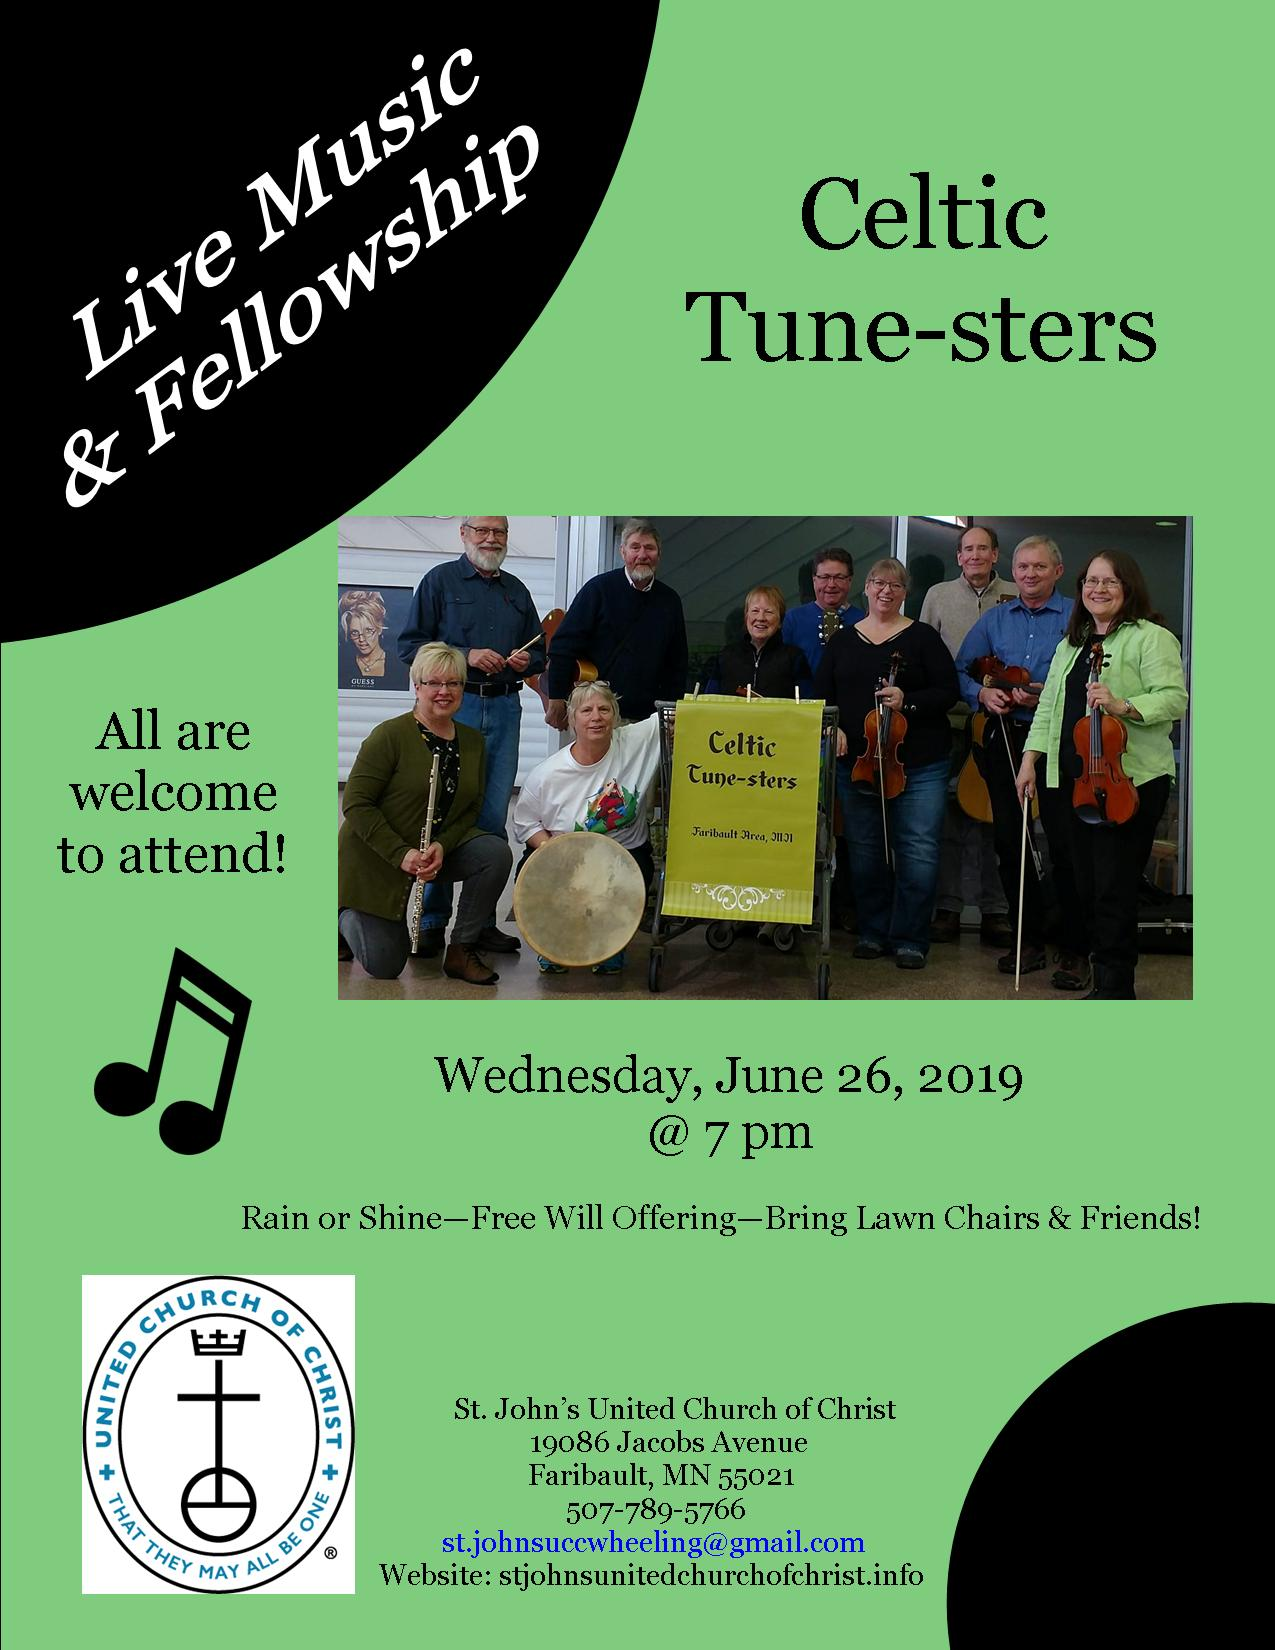 Celtic Tune-sters: Music & Fellowship